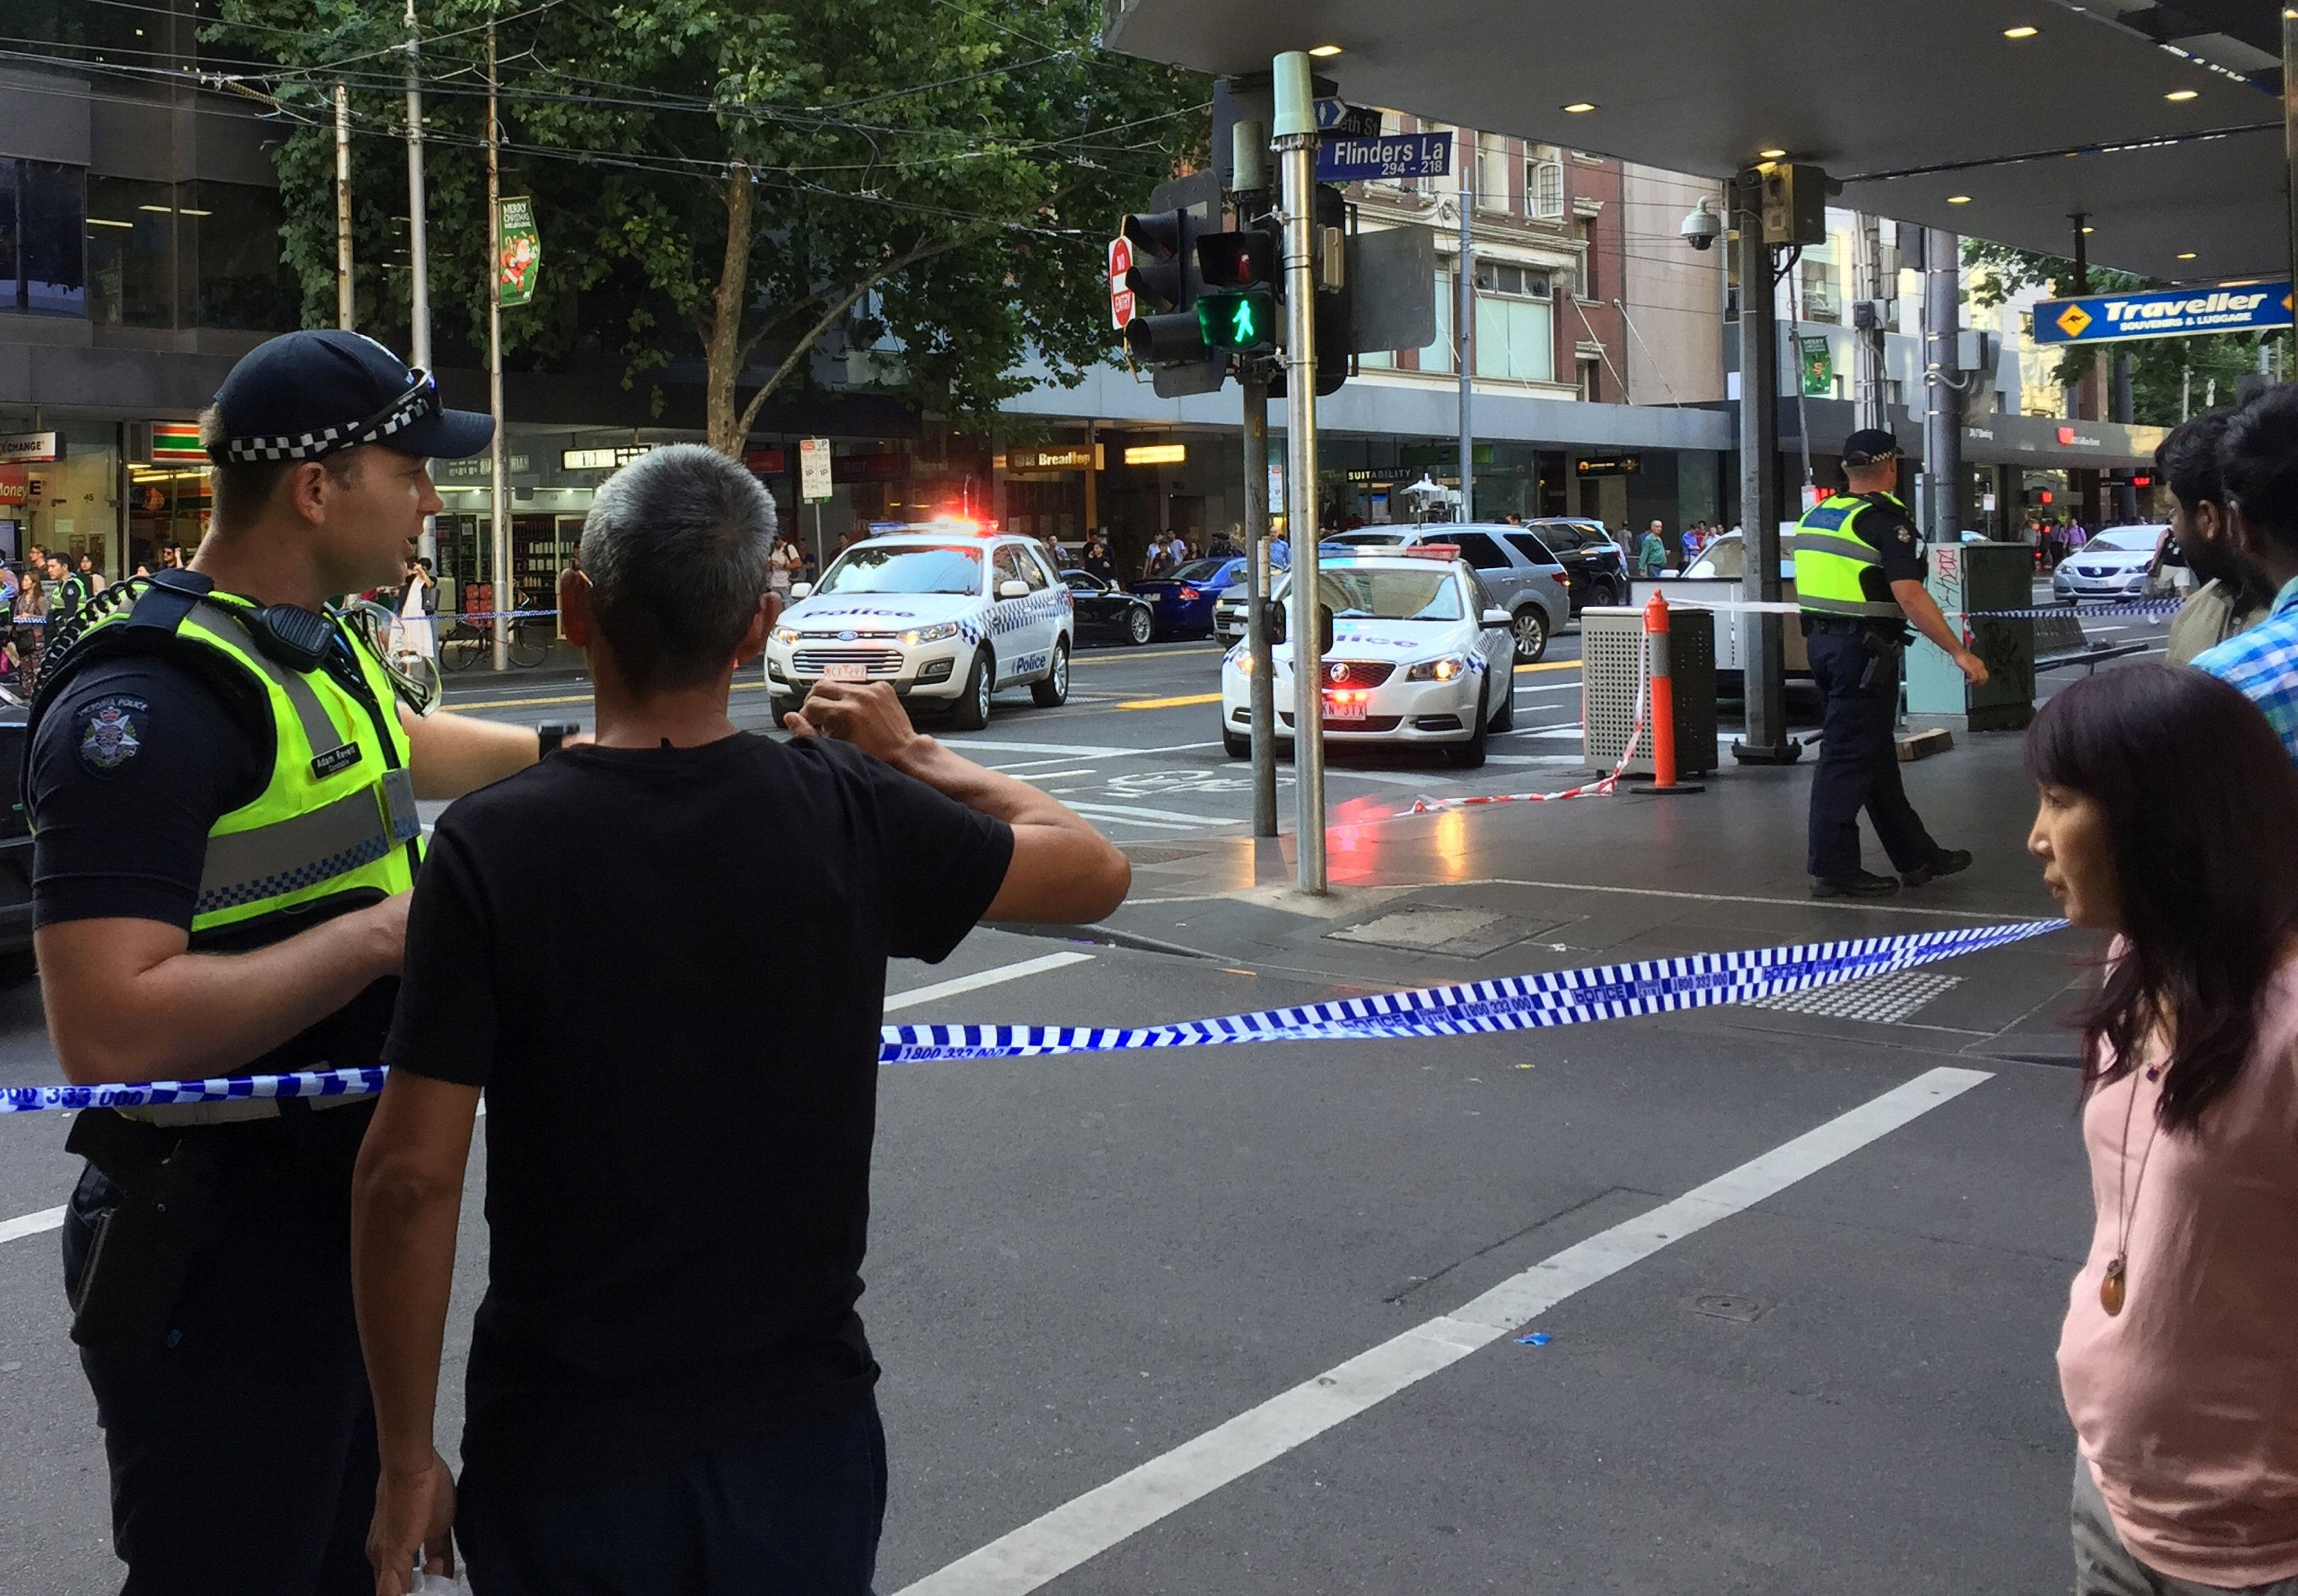 Police officers stand guard as members of the public stand behind police tape after the arrest of the driver of a vehicle that ploughed into pedestrians at a crowded intersection near the Flinders Street train station in central Melbourne, Australia December 21, 2017. REUTERS/Sonali Paul